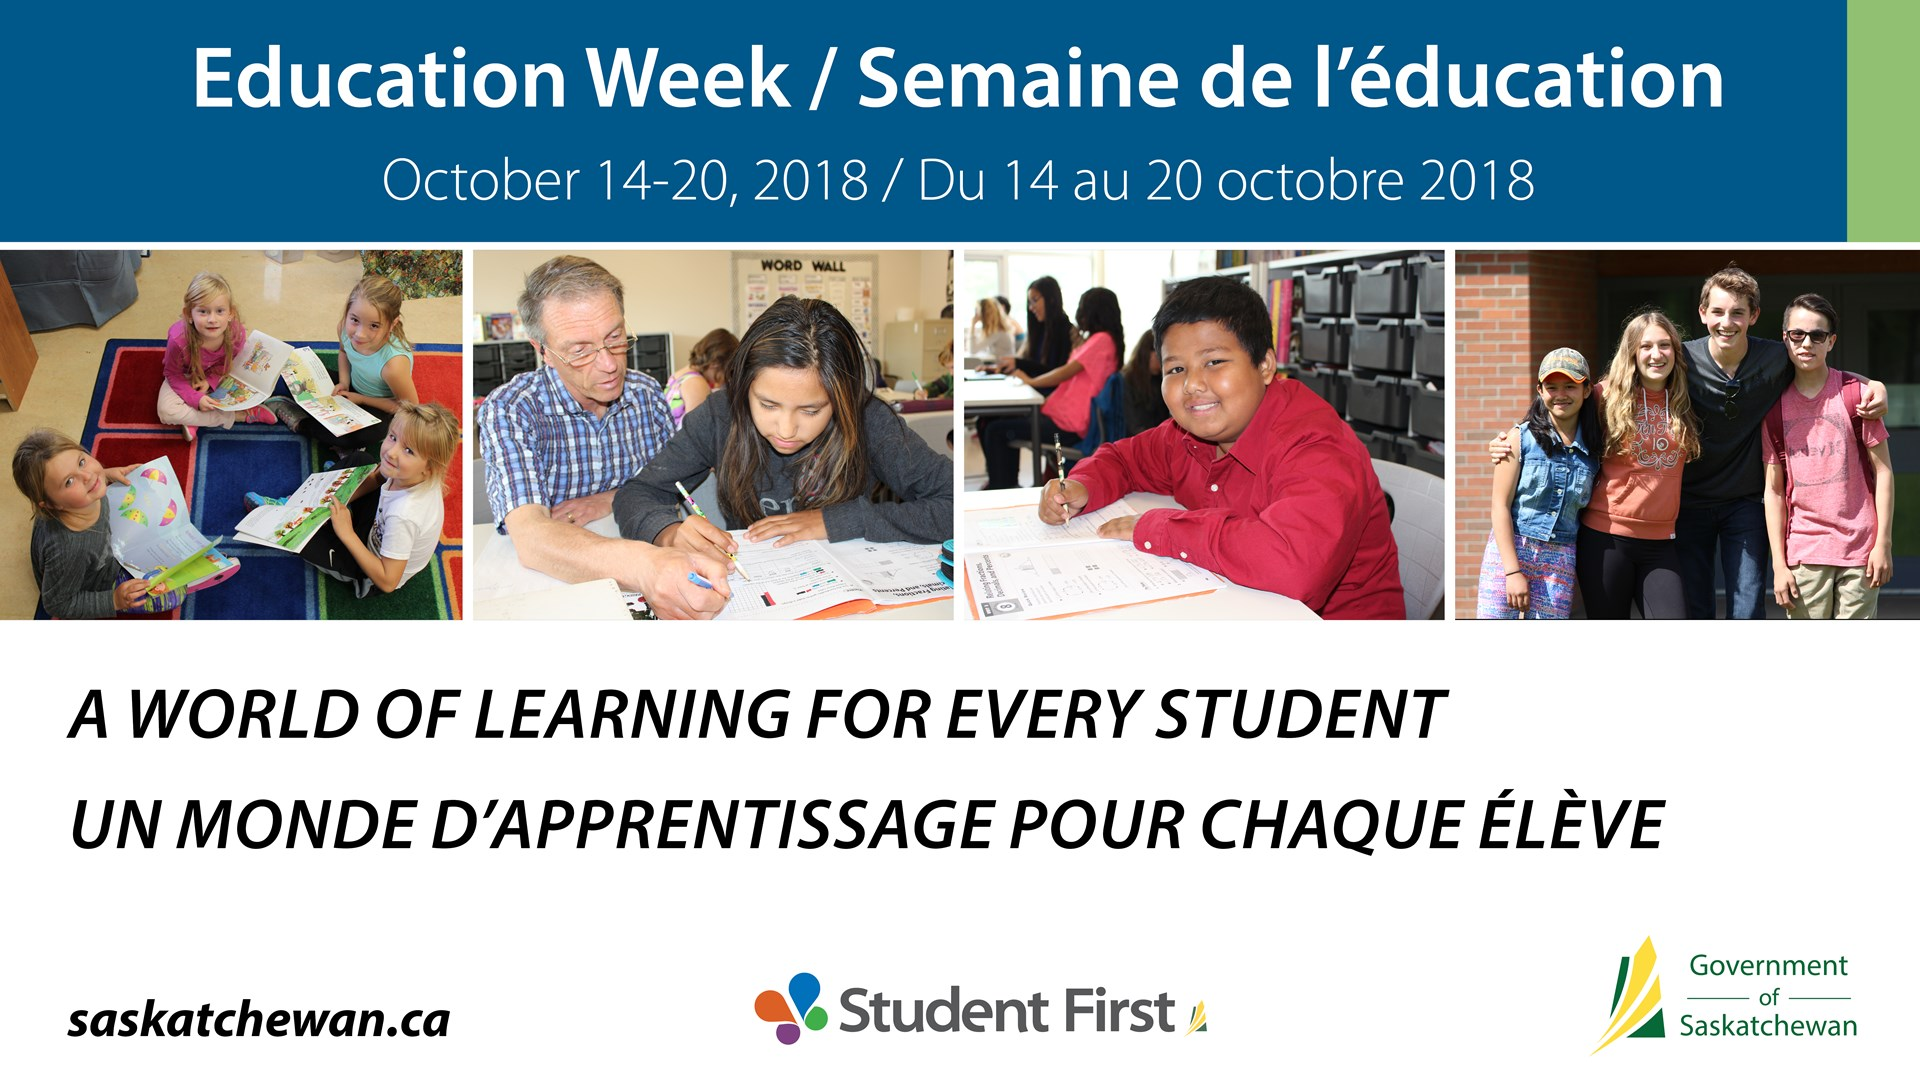 Education-Week-Social-Media-2018.jpg